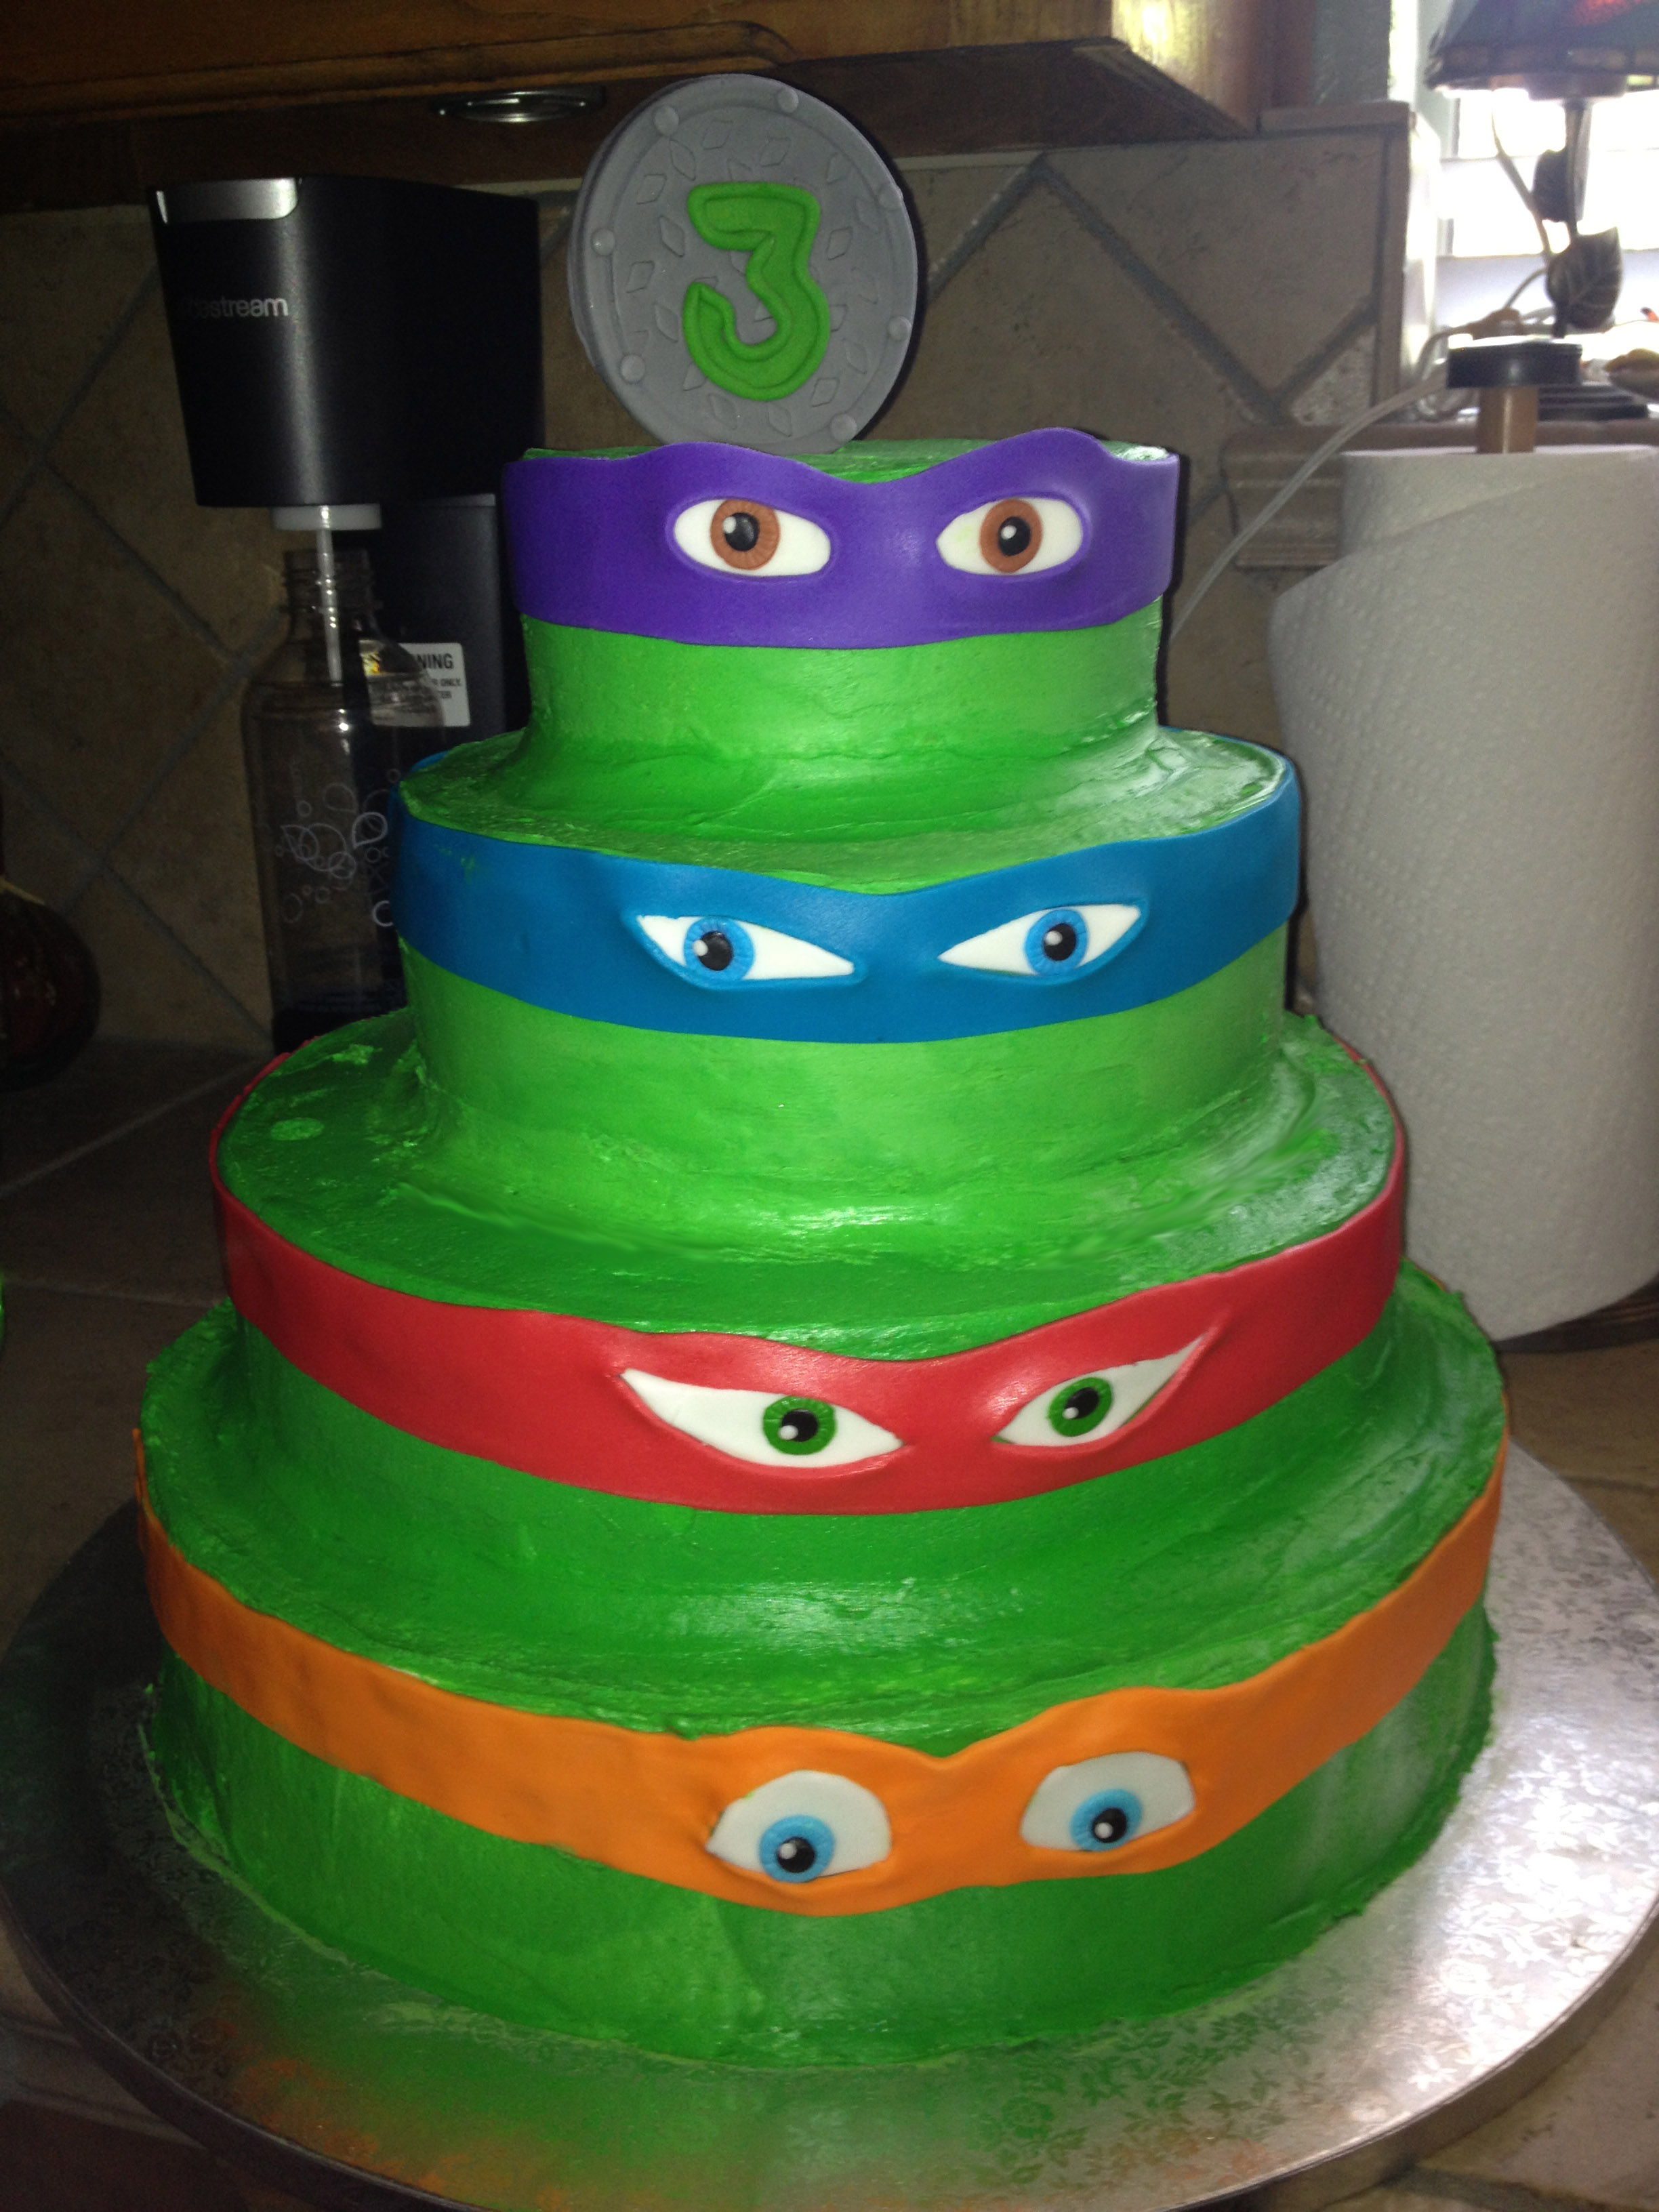 Astonishing 12 Tmnt Bday Cakes Photo Ninja Turtle Birthday Cake Ninja Funny Birthday Cards Online Elaedamsfinfo